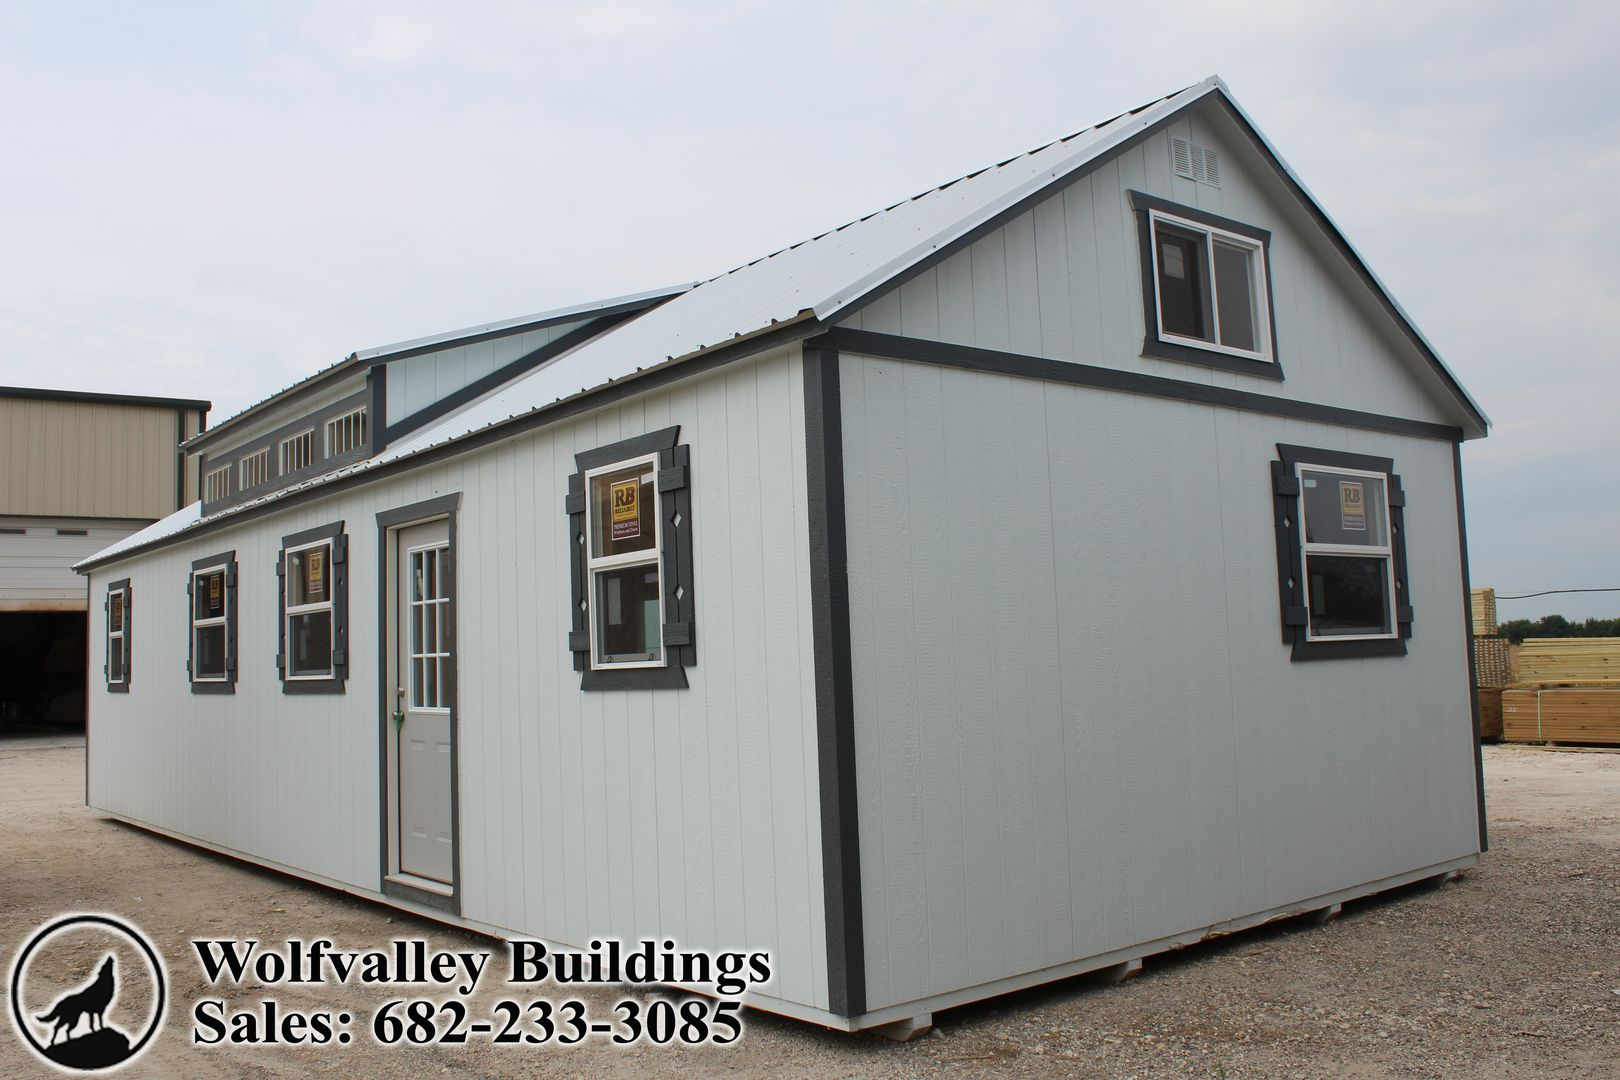 Storage Sheds, Barns, Cabin Shells, Portable Buildings ...